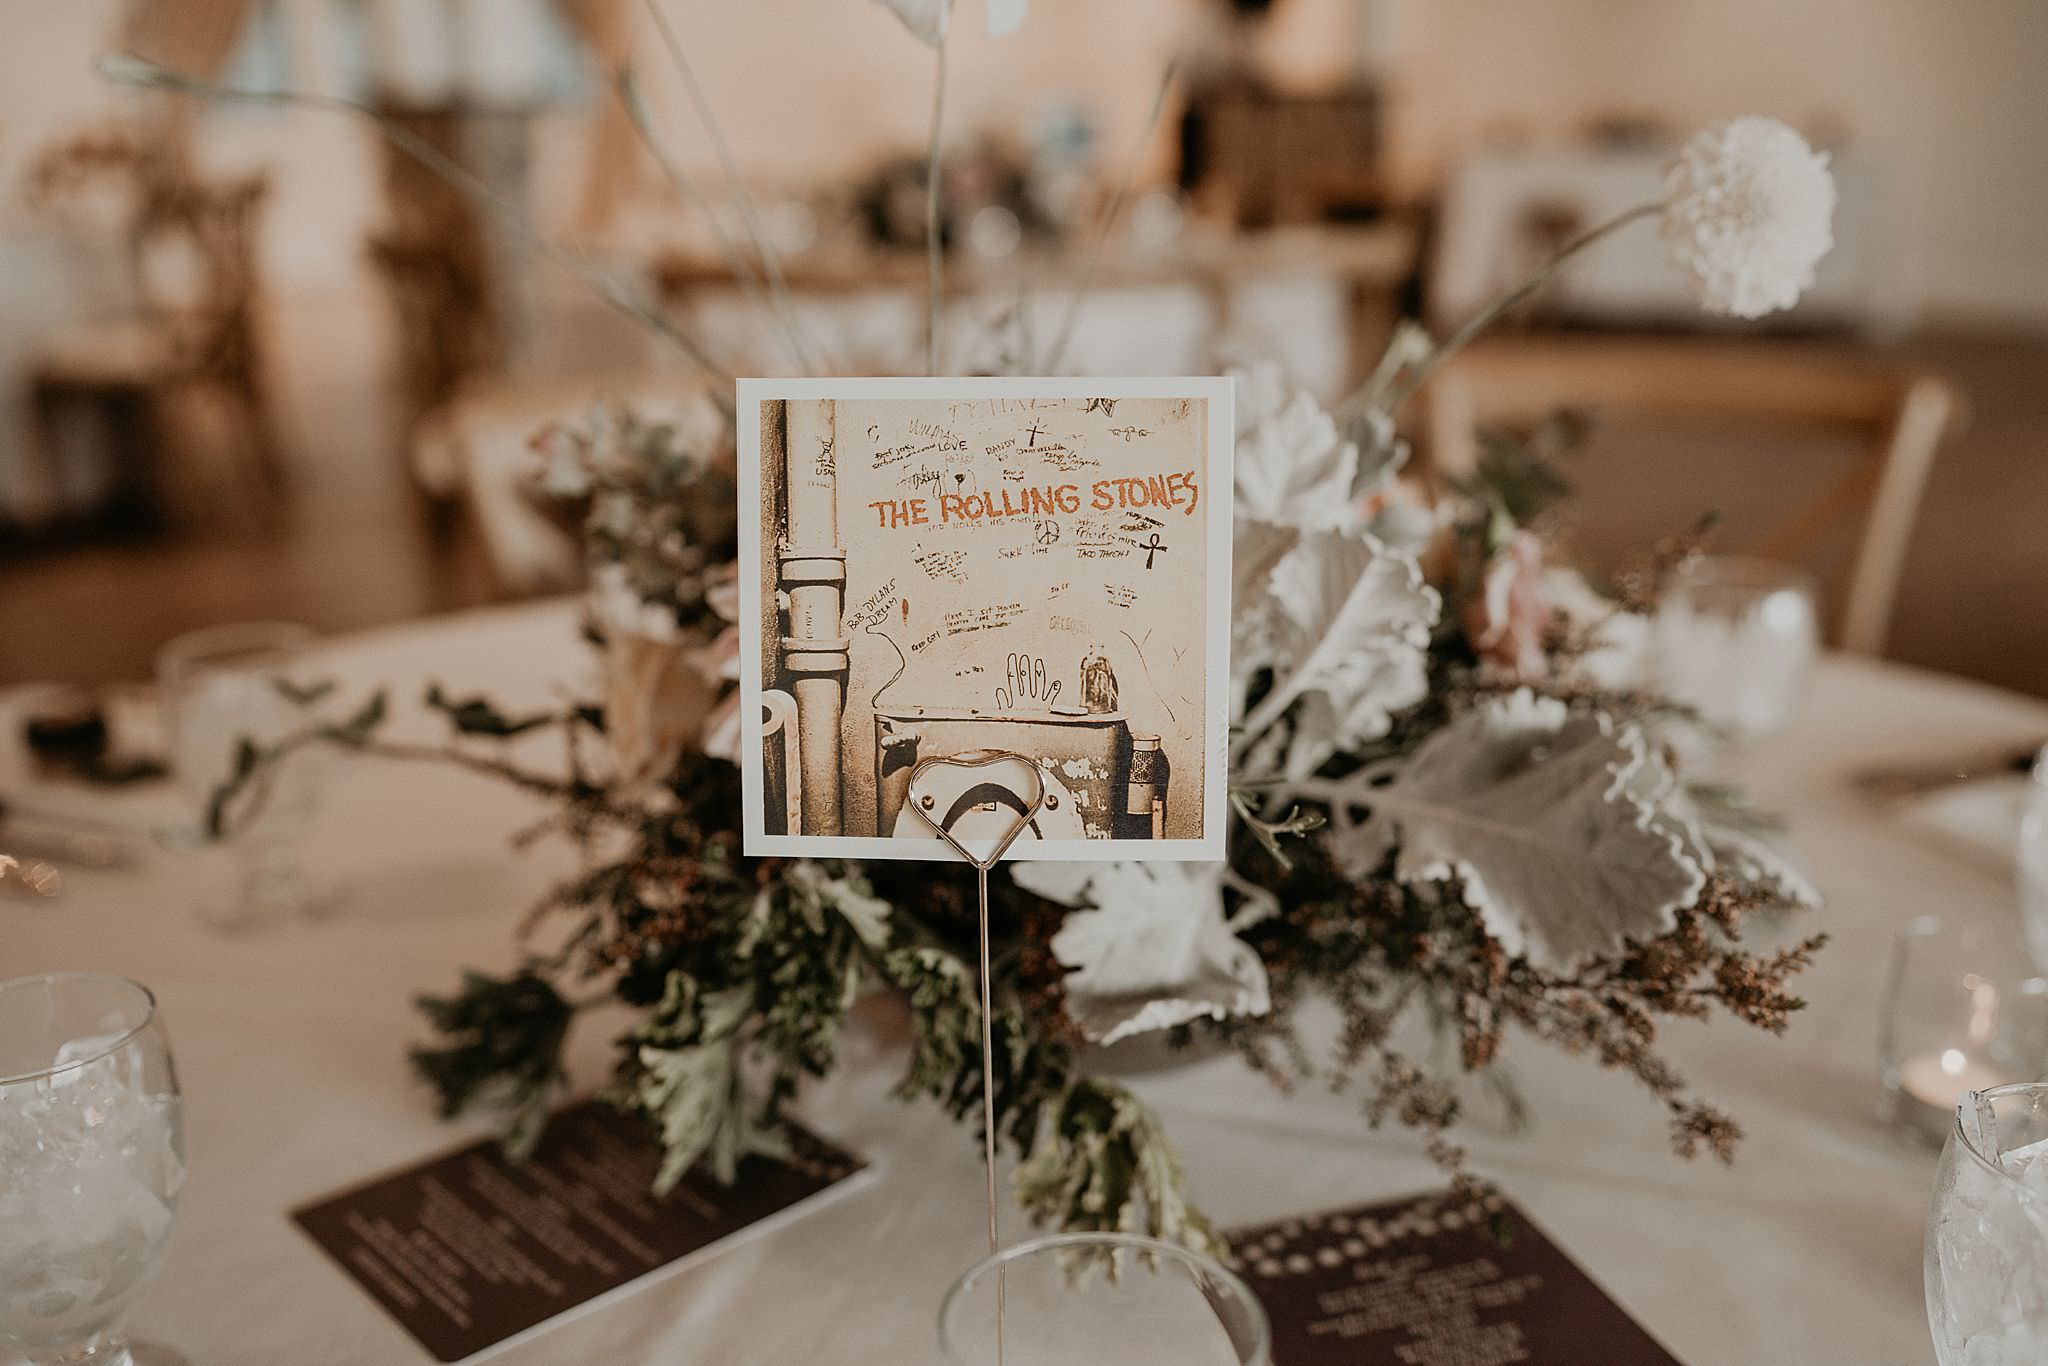 Table numbers by bands and singers the Lumineers imagine dragons Roche Harbor wedding